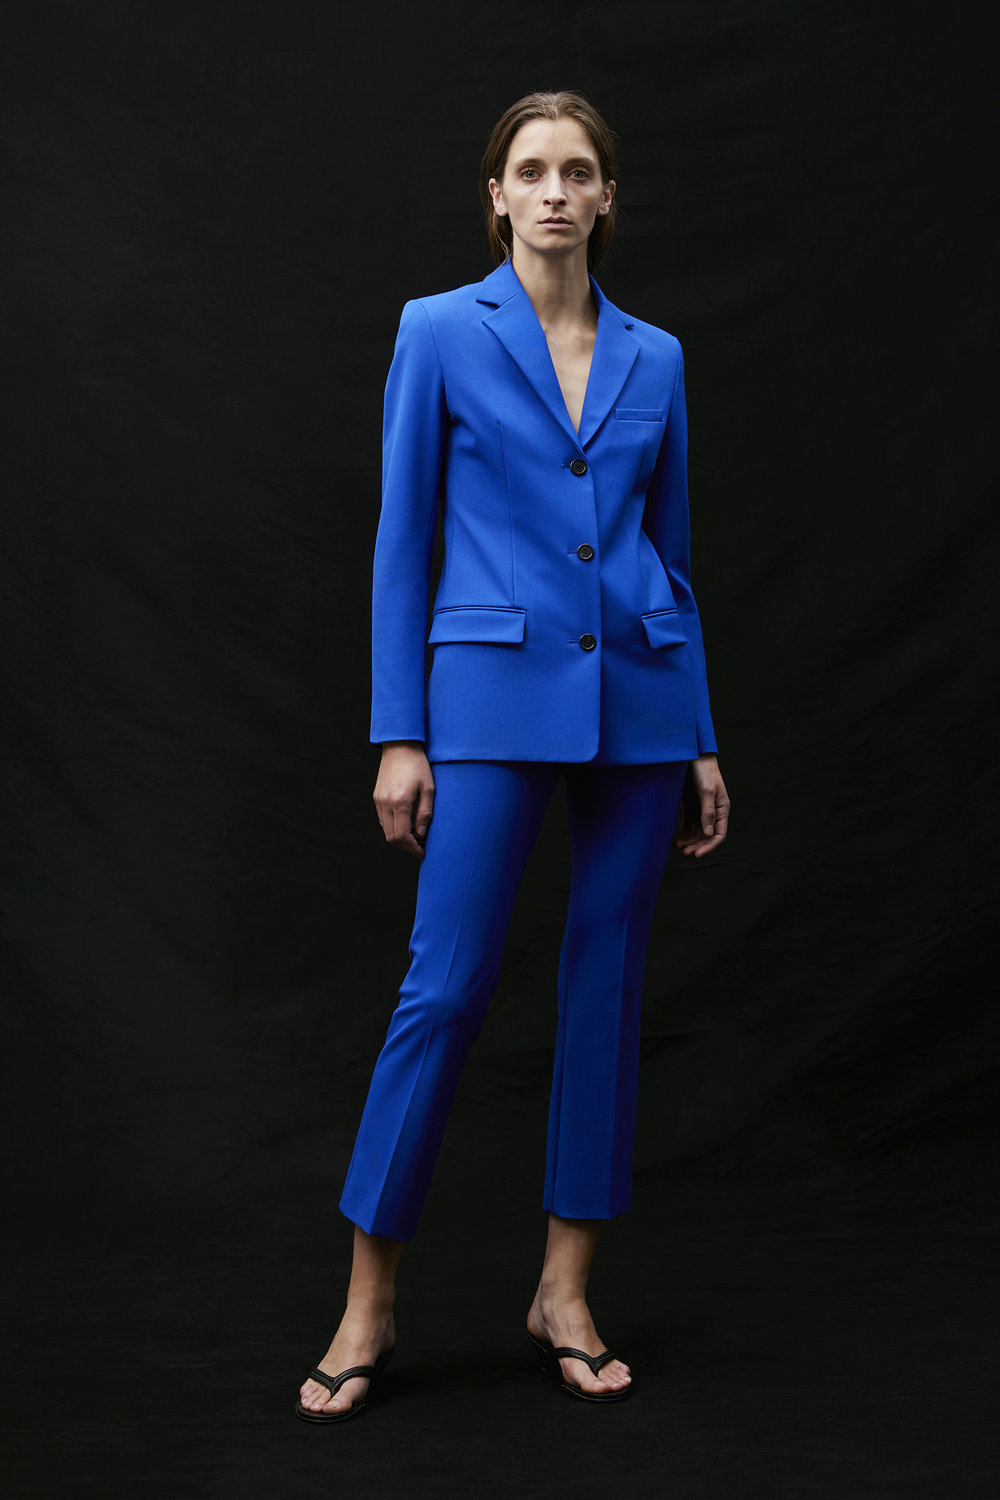 KWE SS18J003-LSW LIGHT WOOL BLAZER INDUSTRIAL BLUE AND SS18P007-LSW SKINNY CROPPED PANT INDUSTRIAL BLUE   .jpg